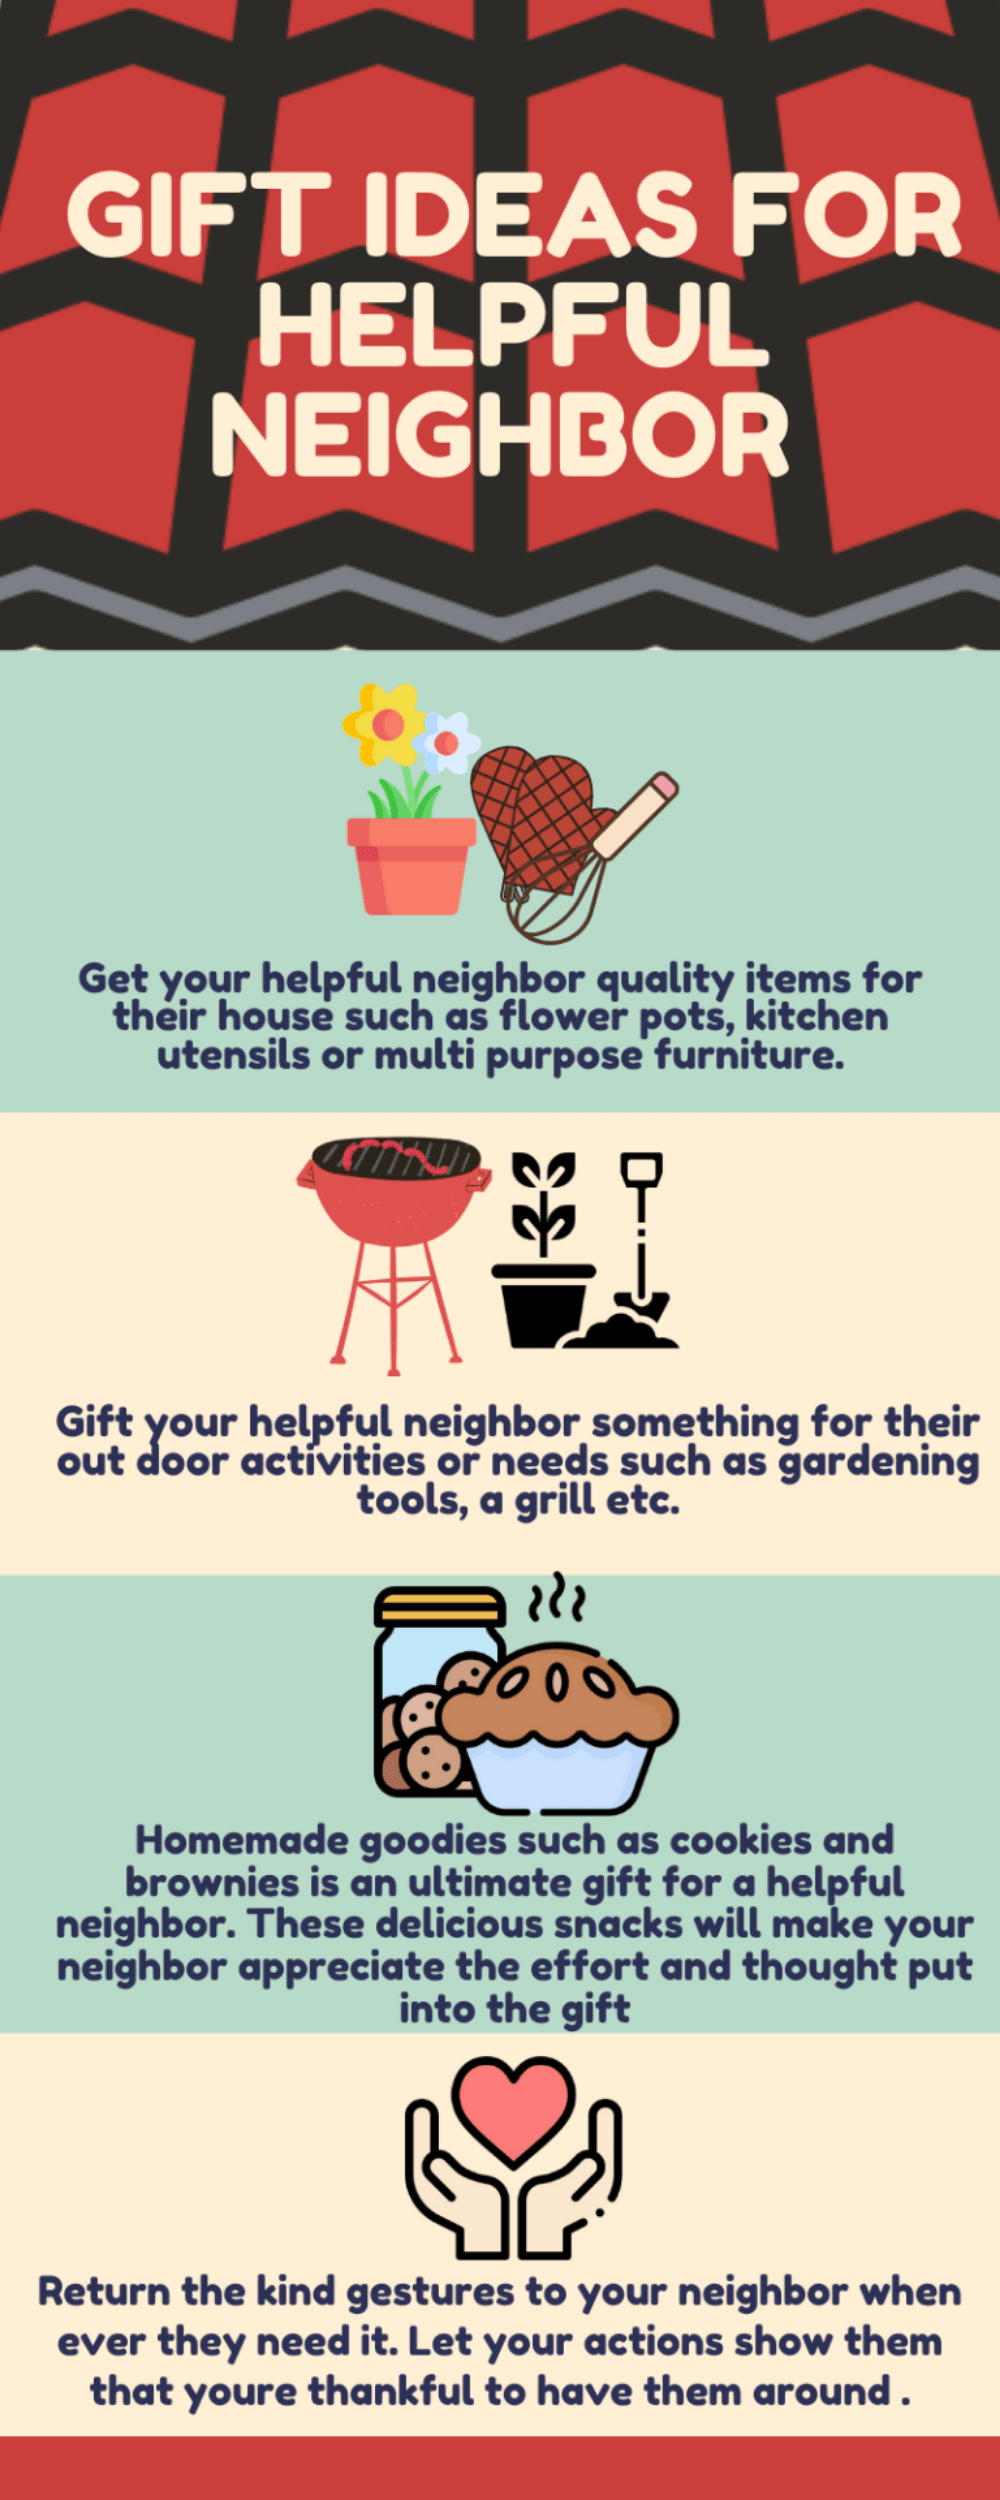 Infographic gift ideas for helpful neighbor Checklist